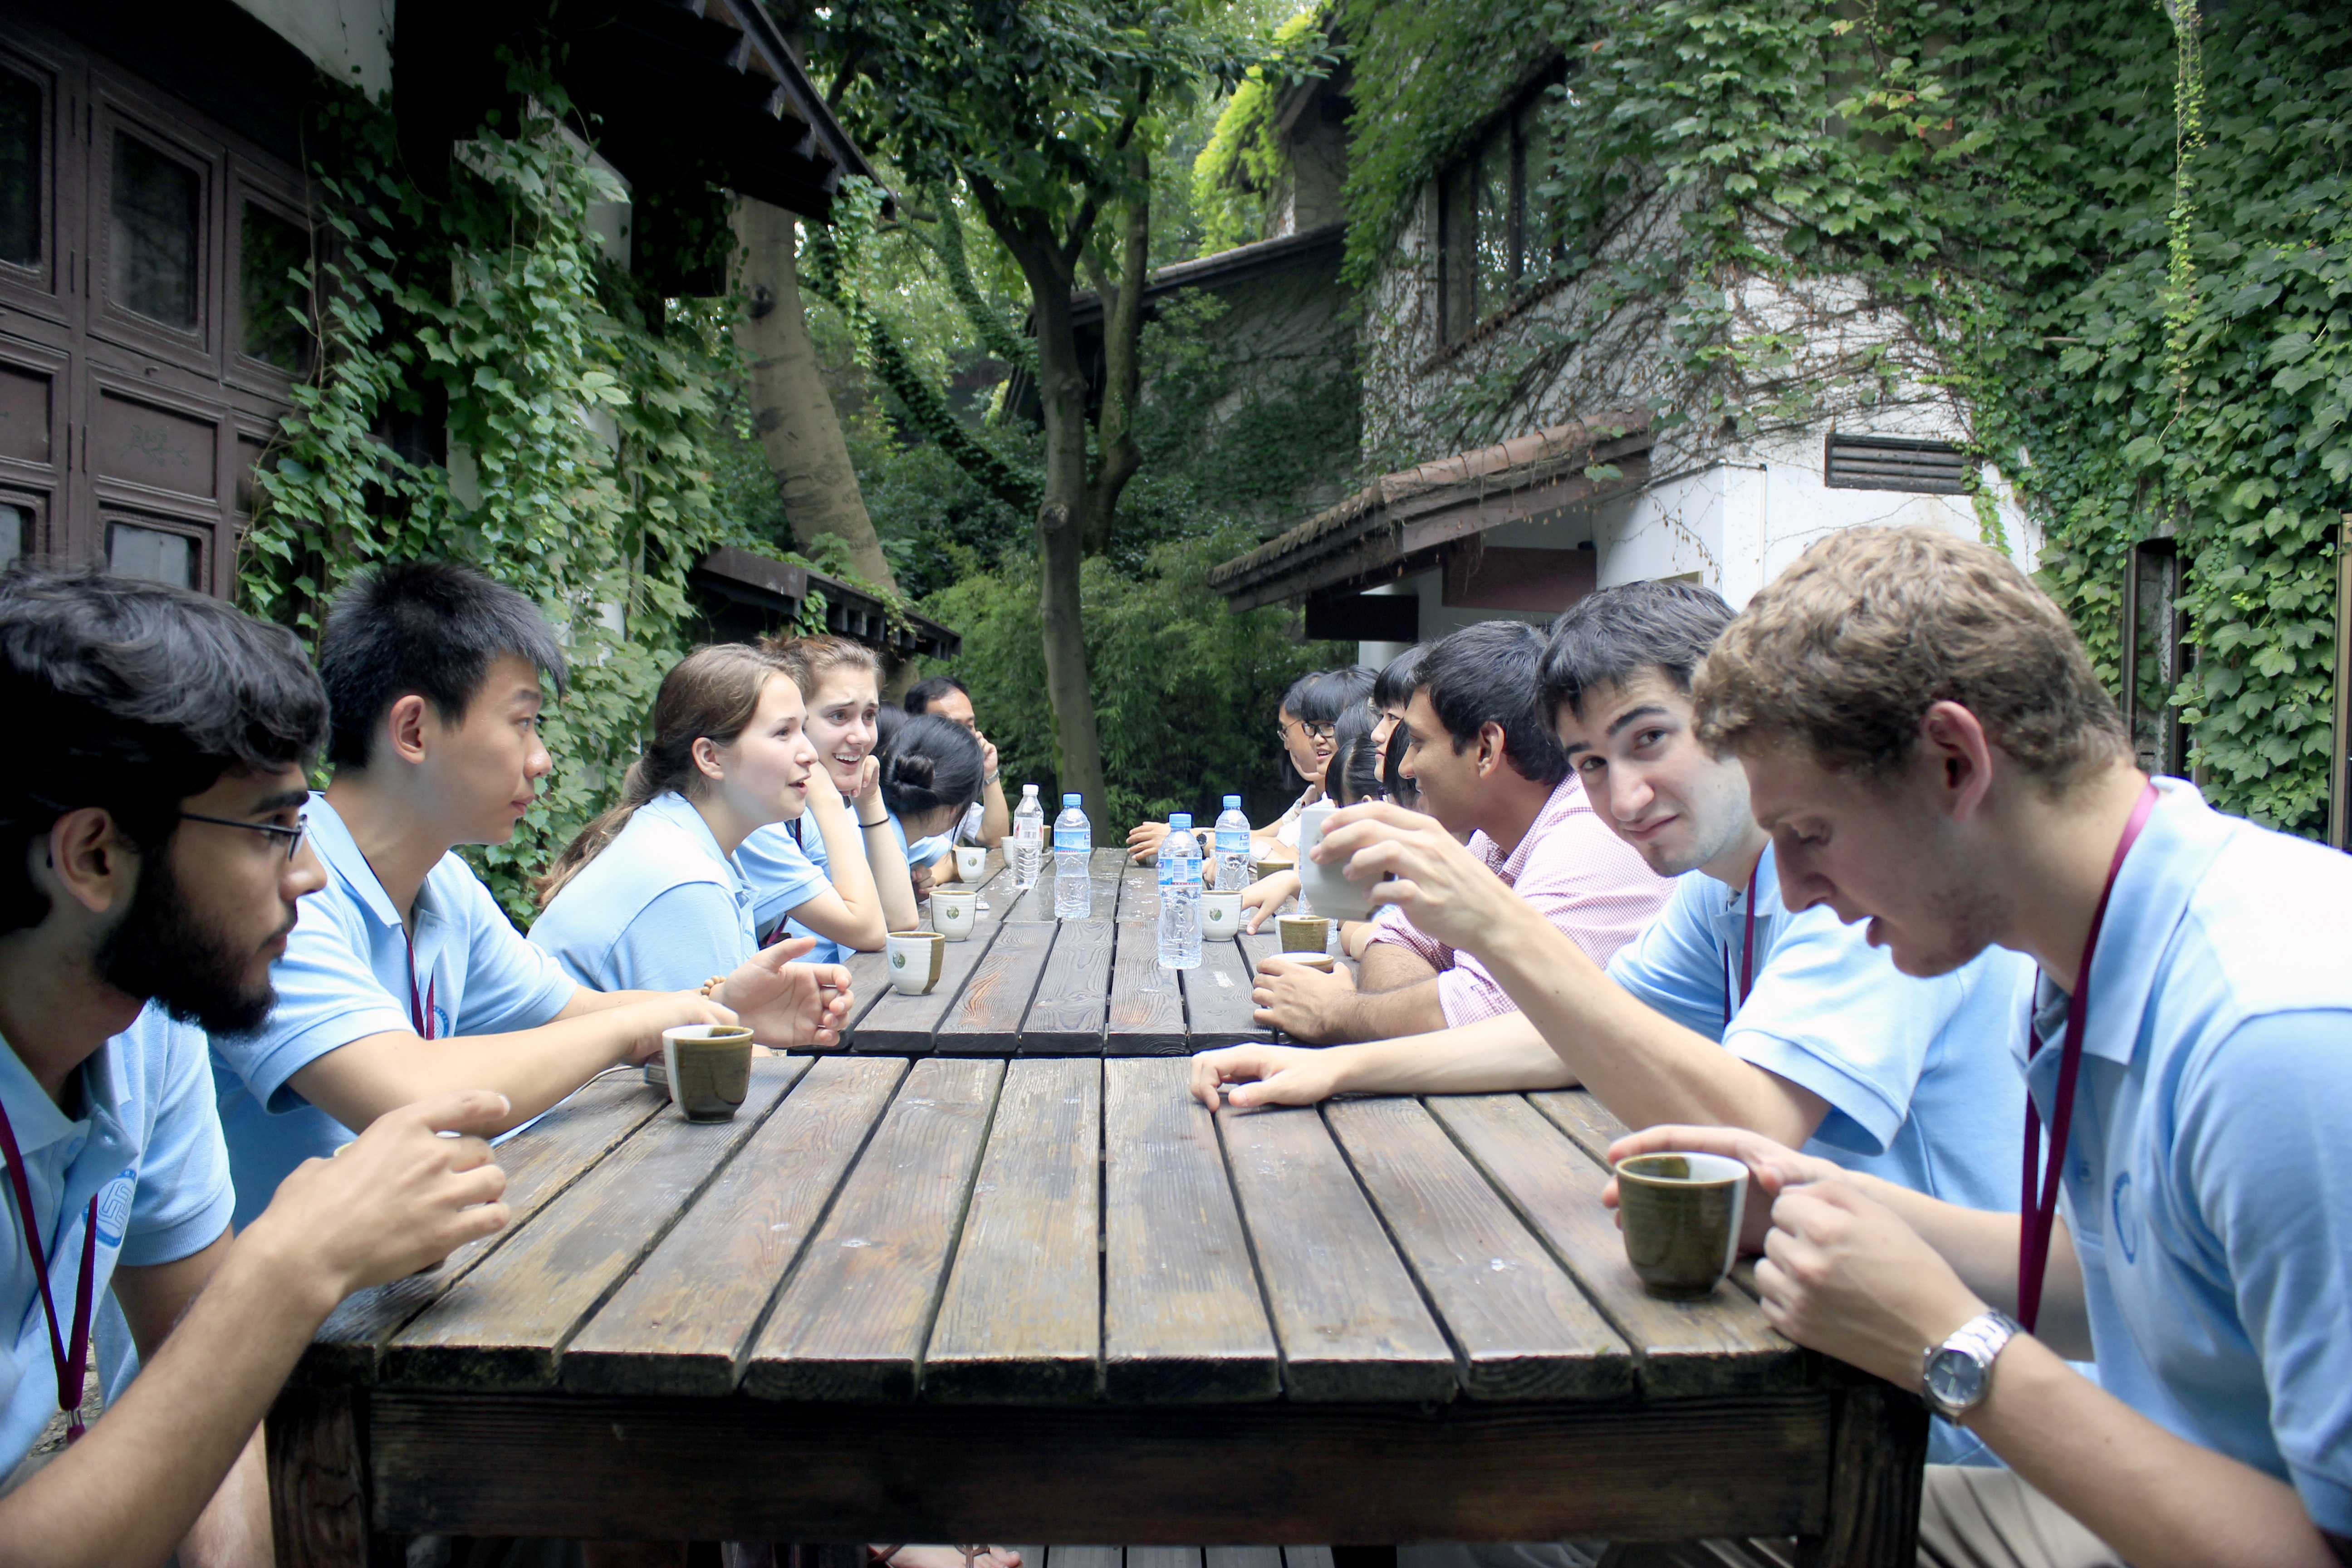 Northwestern students from the Green Tech trip to China have tea together. The trip was funded by a federal grant proposed by President Barack Obama.